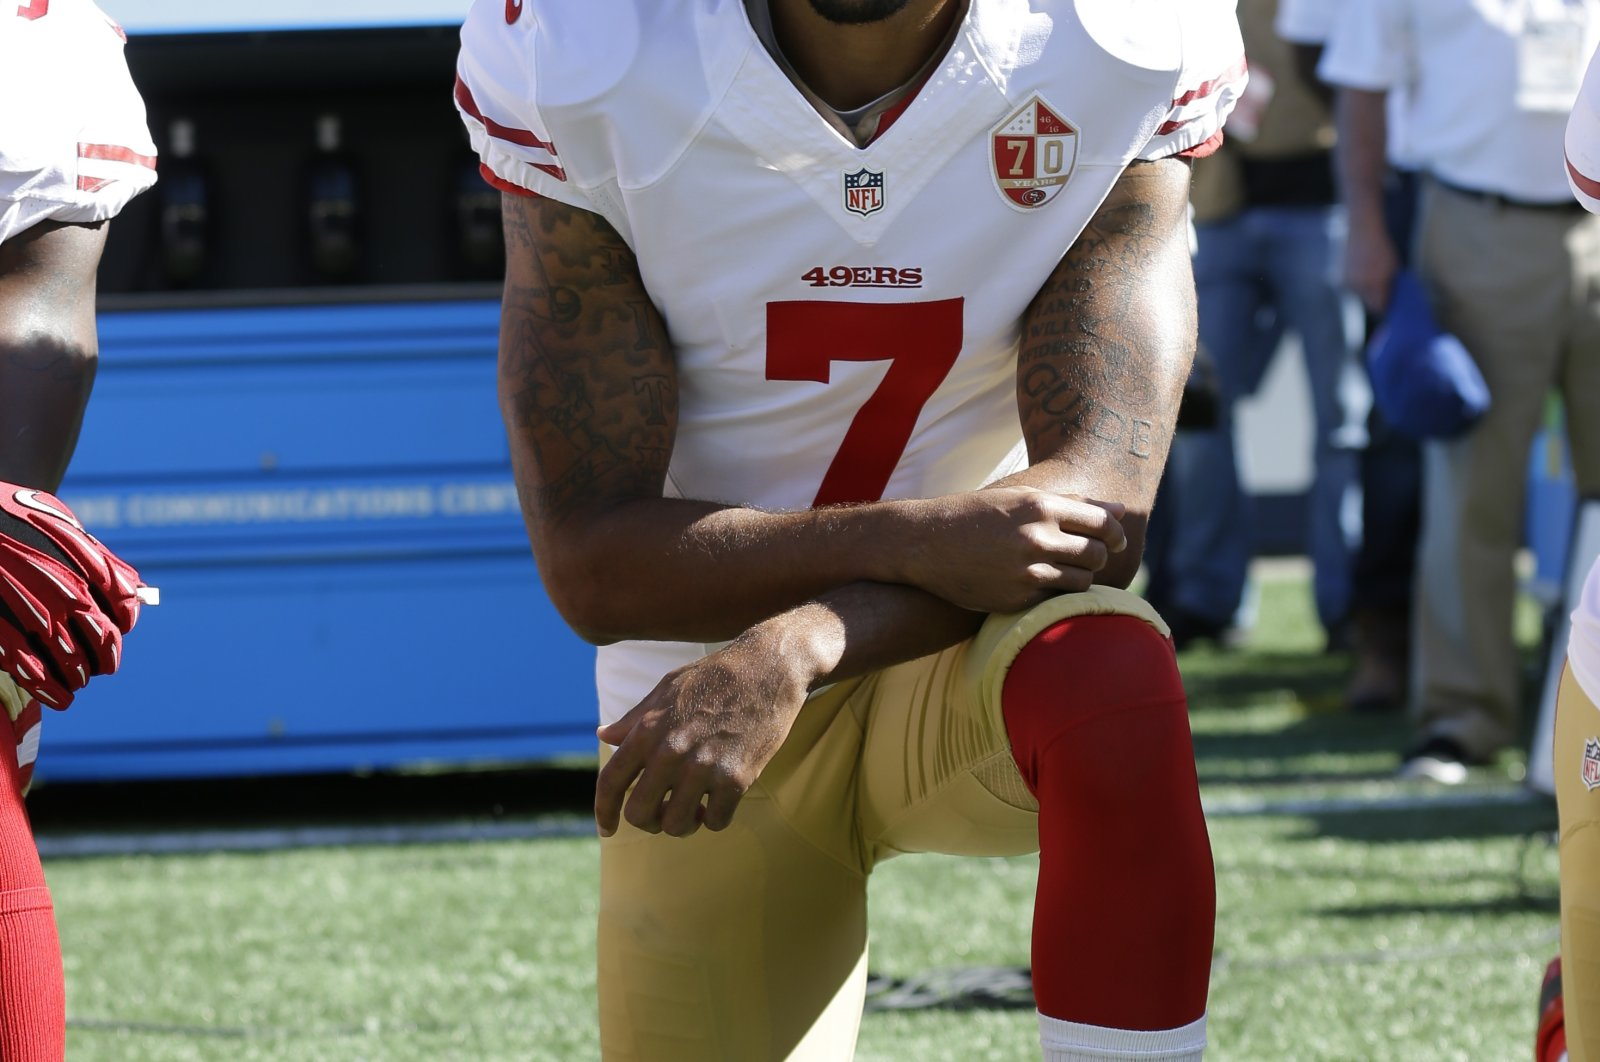 San Francisco 49ers' Colin Kaepernick kneeling during the national anthem before an NFL football game against the Seattle Seahawks in Seattle, Sept. 25, 2016 (AP Photo)